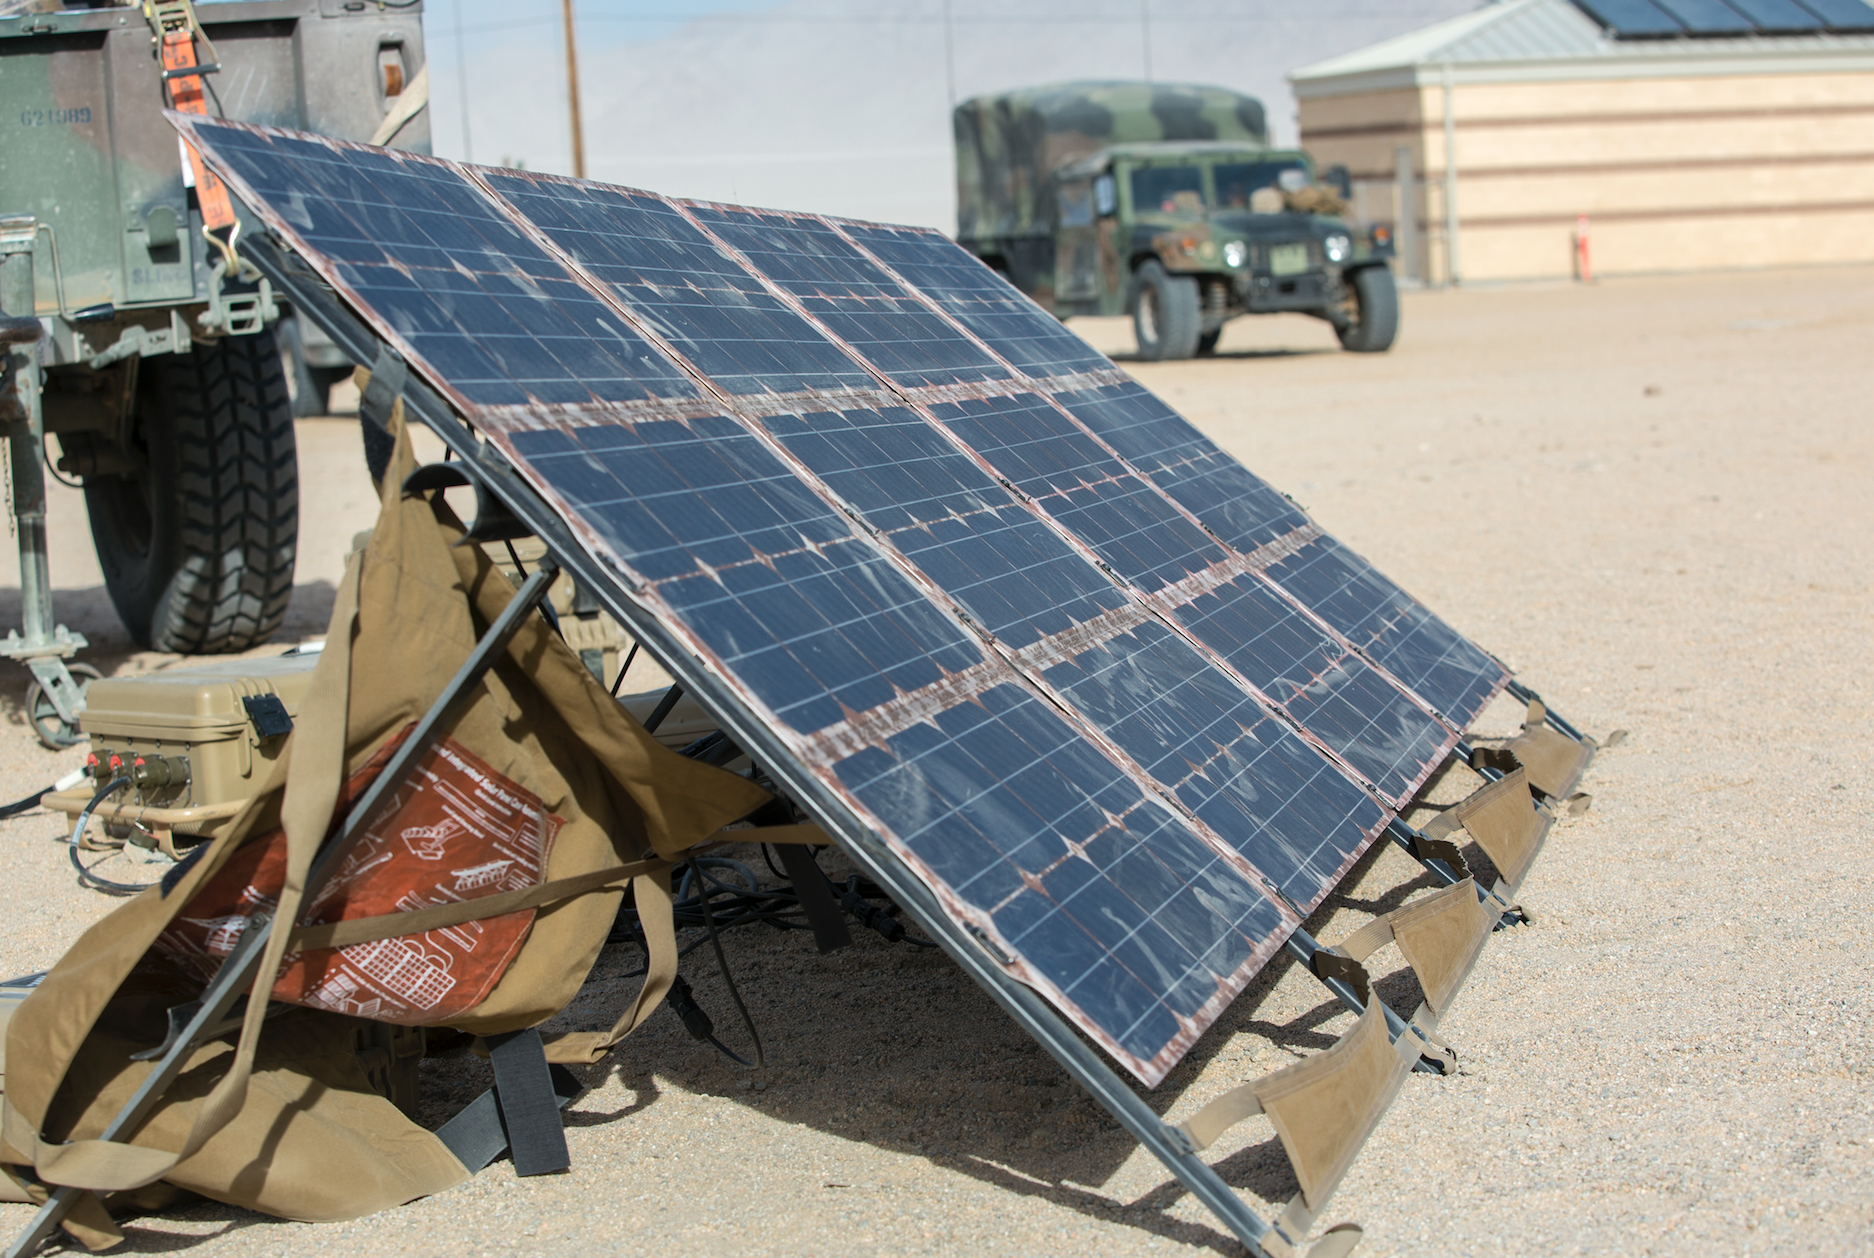 Marines with 3rd Battalion, 11th Marine Regiment, display the Ground Renewable Expeditionary Electronics Network System during the Energy Capability Exercise, in alignment with the Great Green Fleet initiative, at Camp Wilson aboard the Marine Corps Air Ground Combat Center, Twentynine Palms, Calif., Dec. 6, 2016. Marine Corps Photo